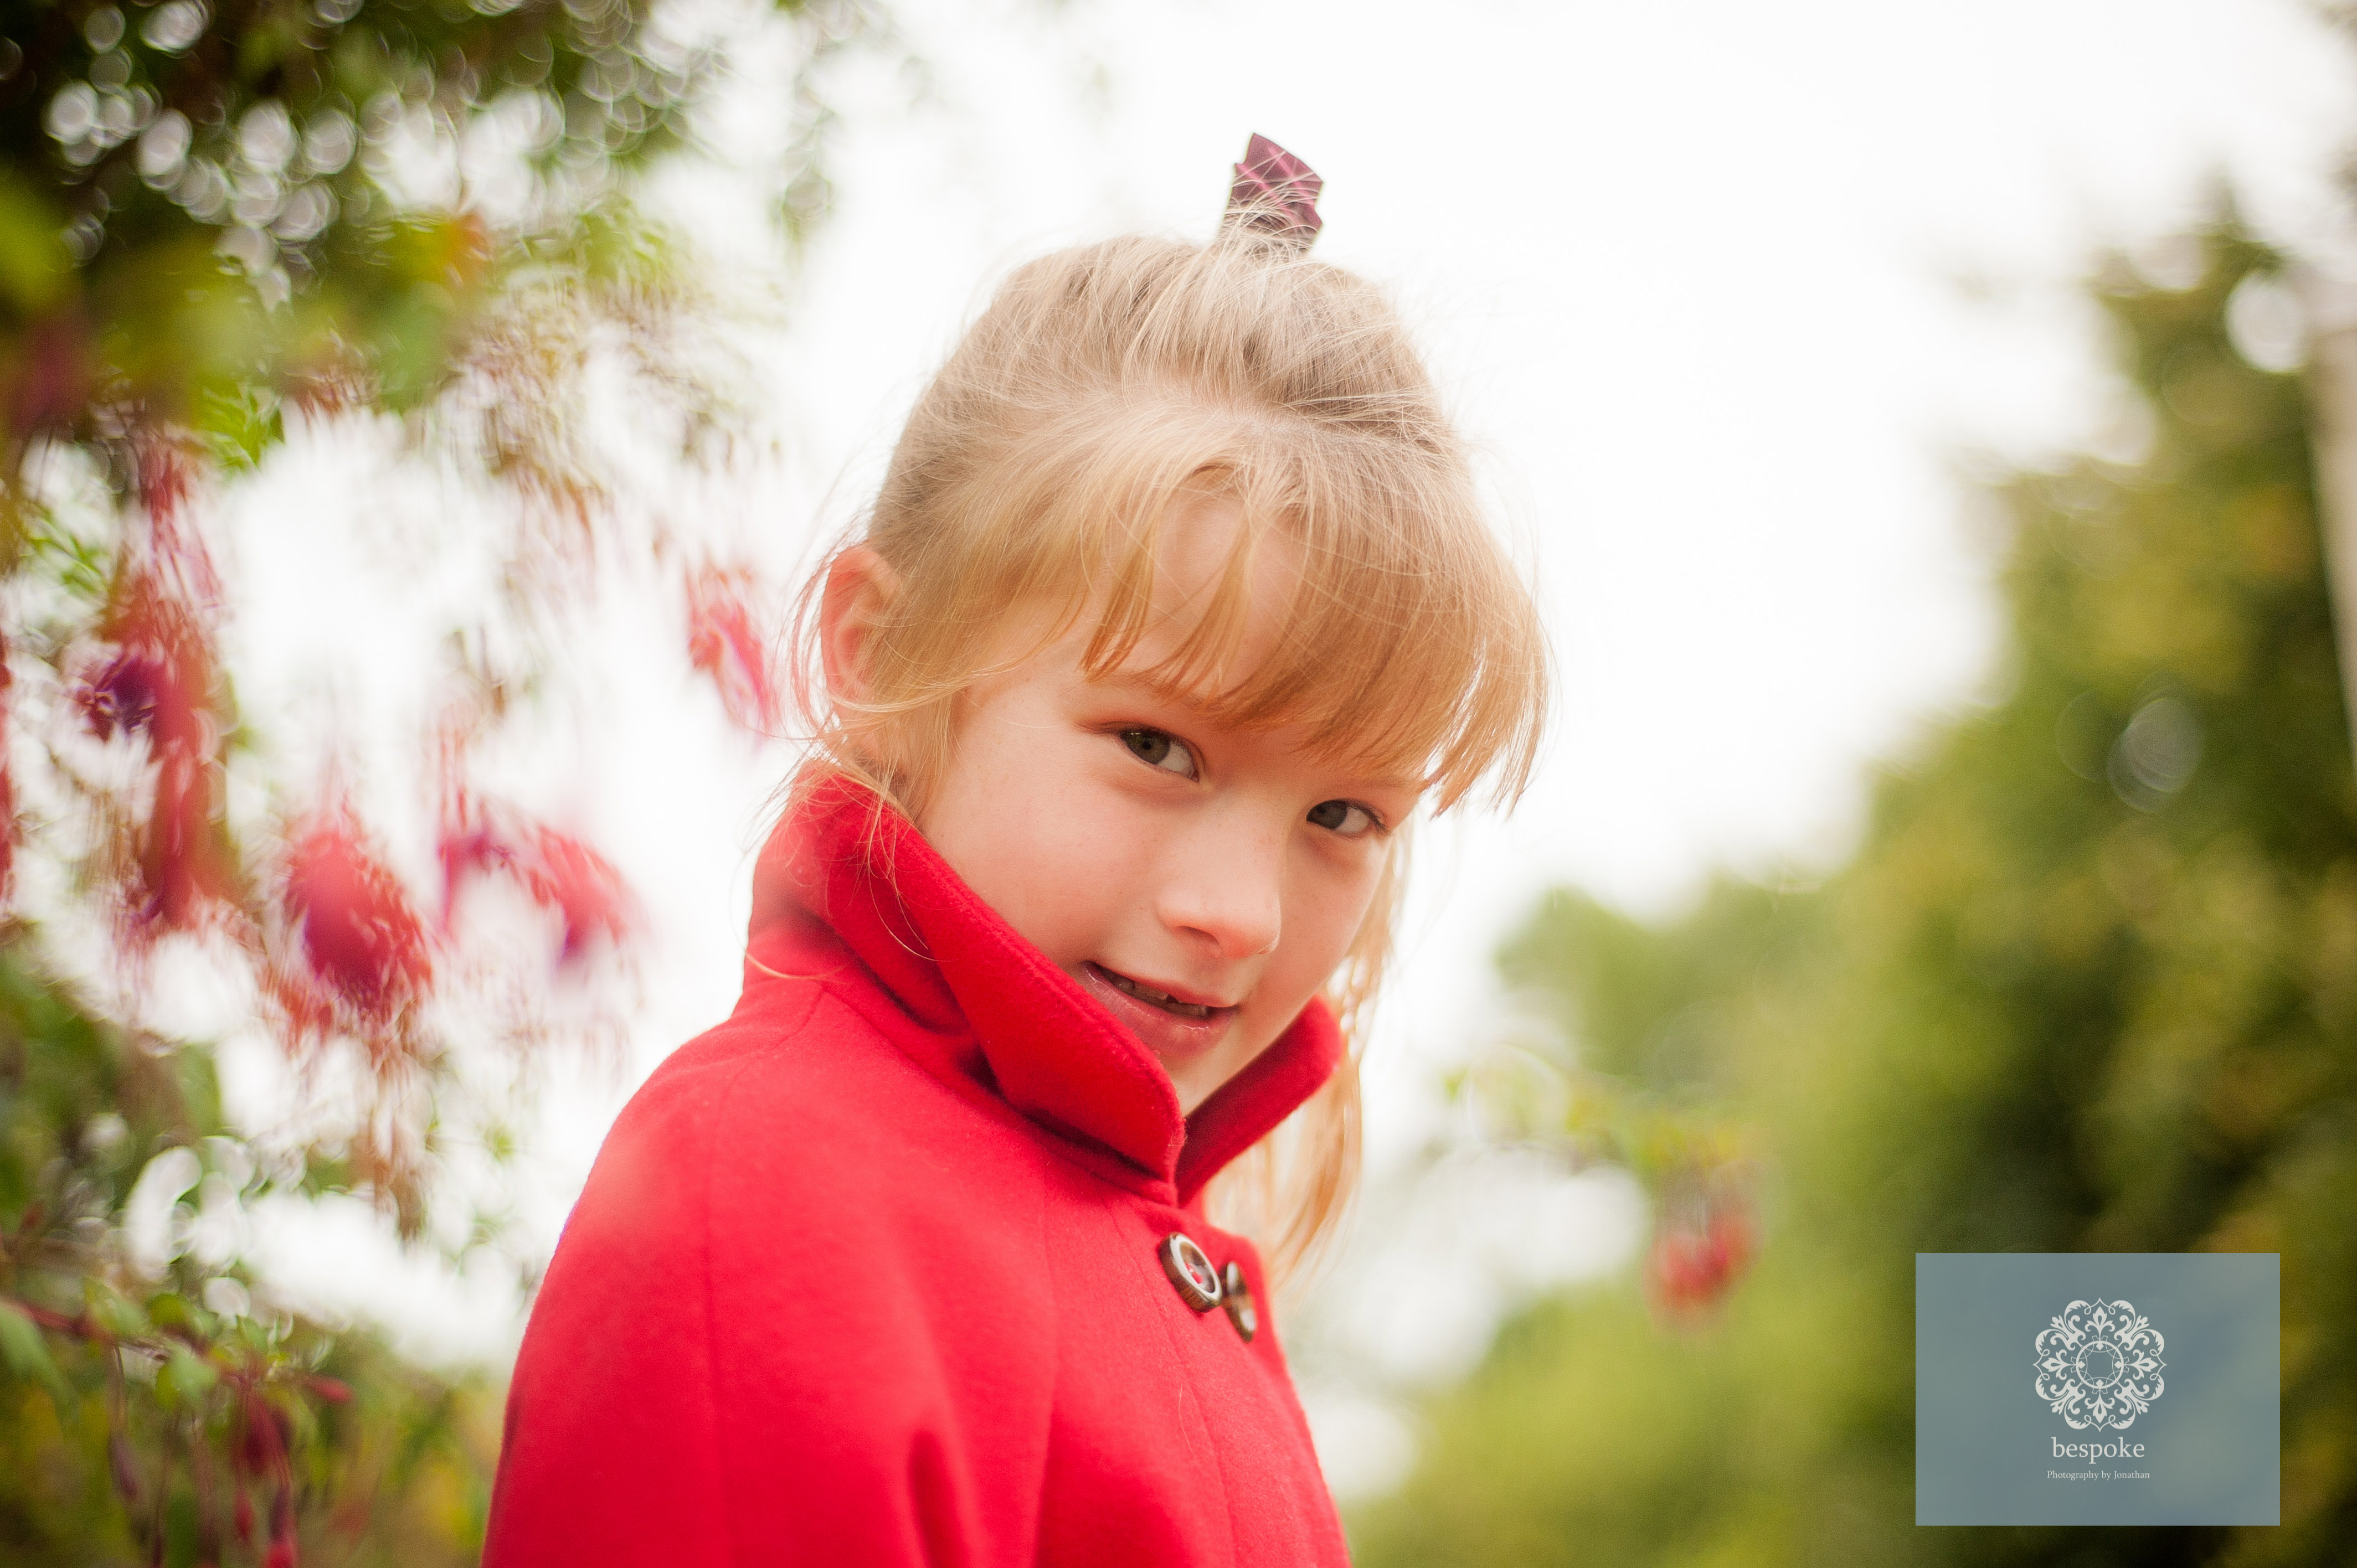 Bespoke portrait photography